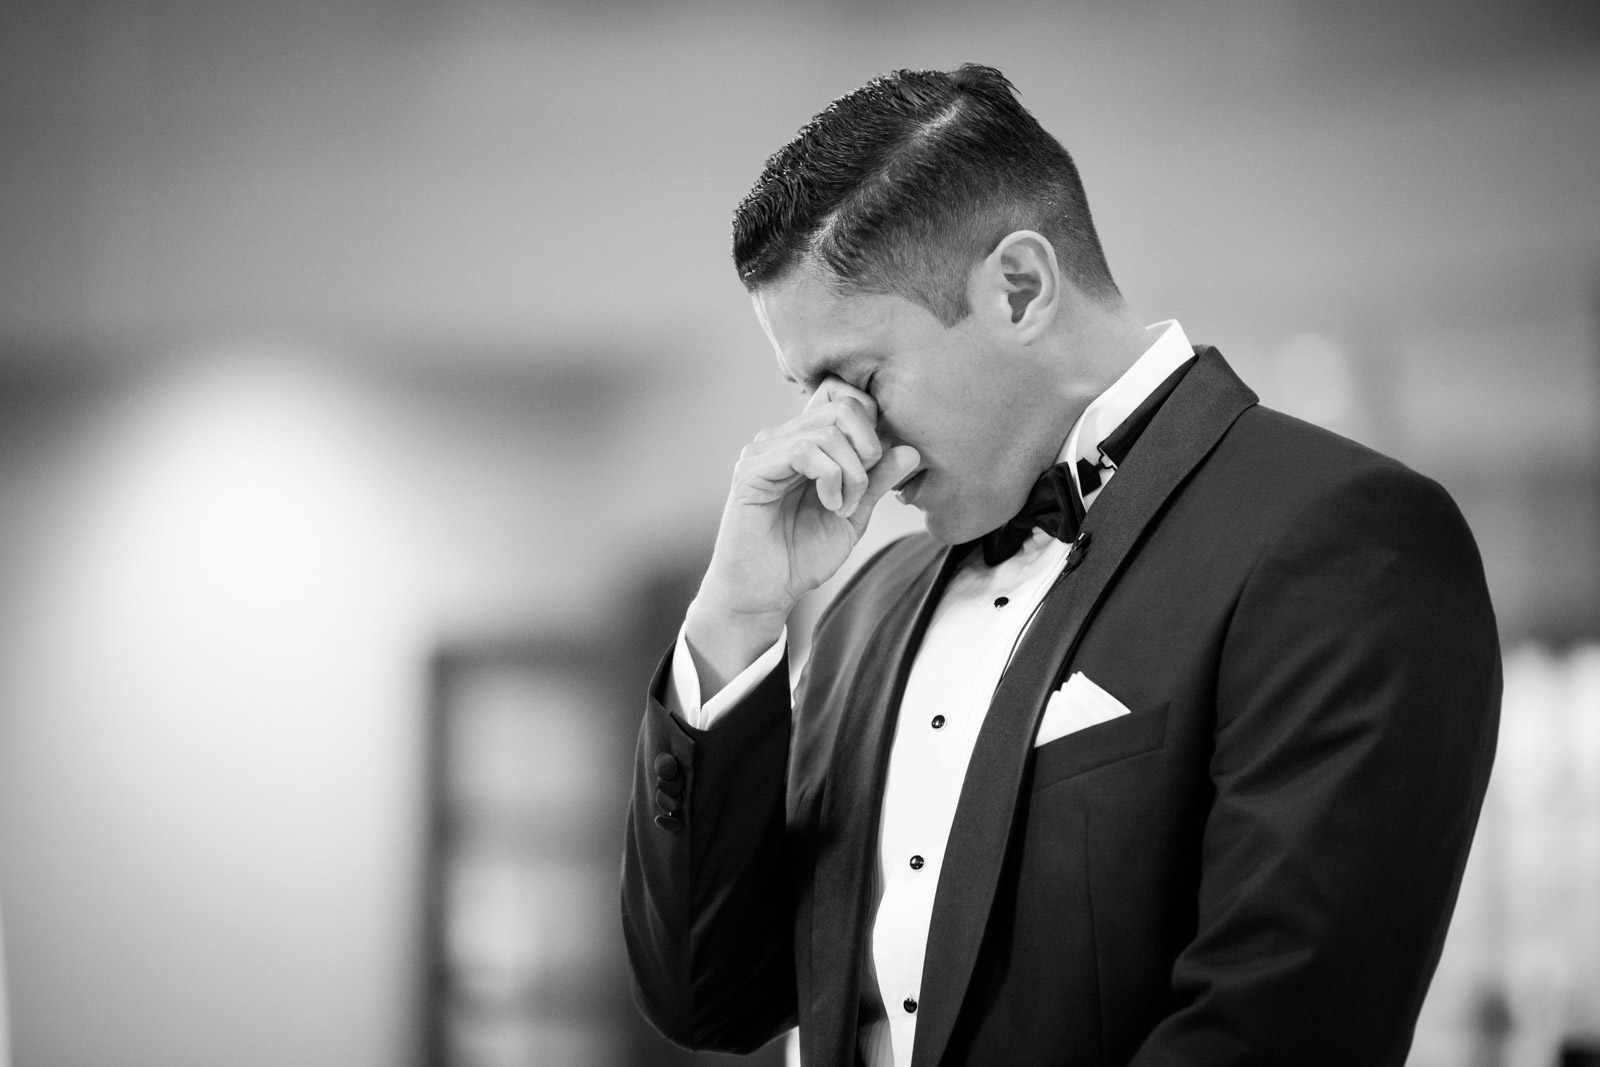 Groom gets a tear in his eye and begins to cry as he sees his wife coming down the aisle with her father